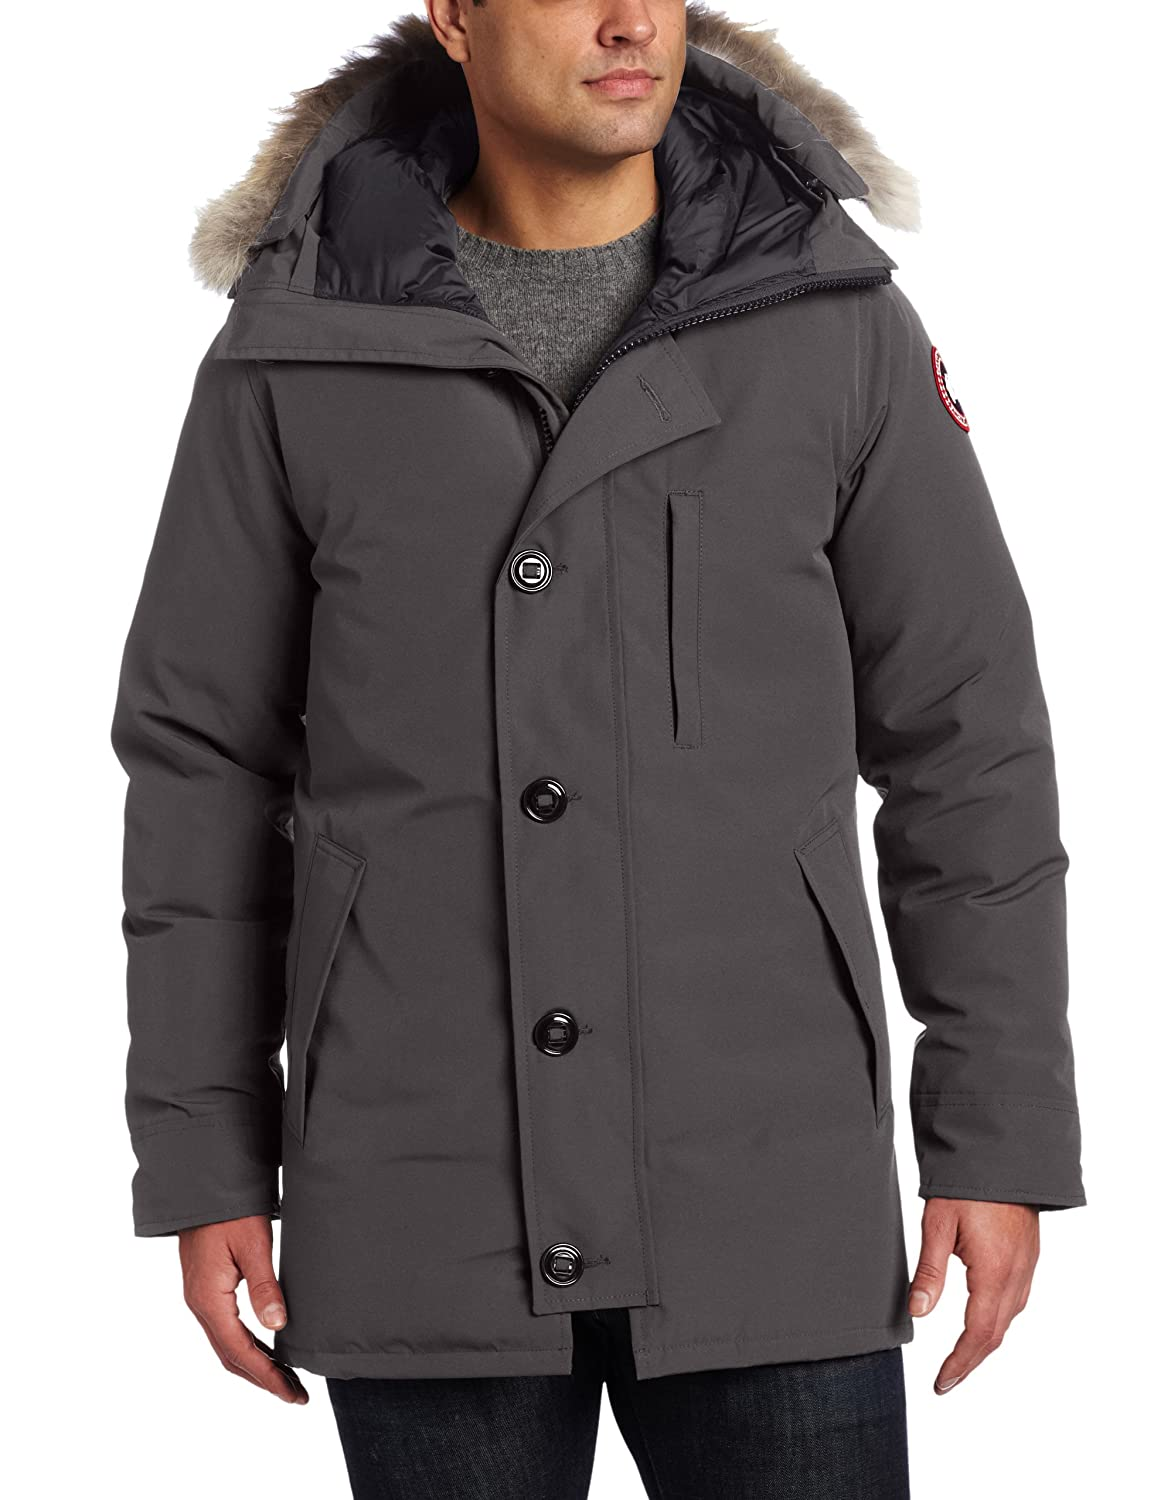 Canada Goose chilliwack parka outlet price - Amazon.com: Canada Goose Men's The Chateau Jacket: Sports & Outdoors